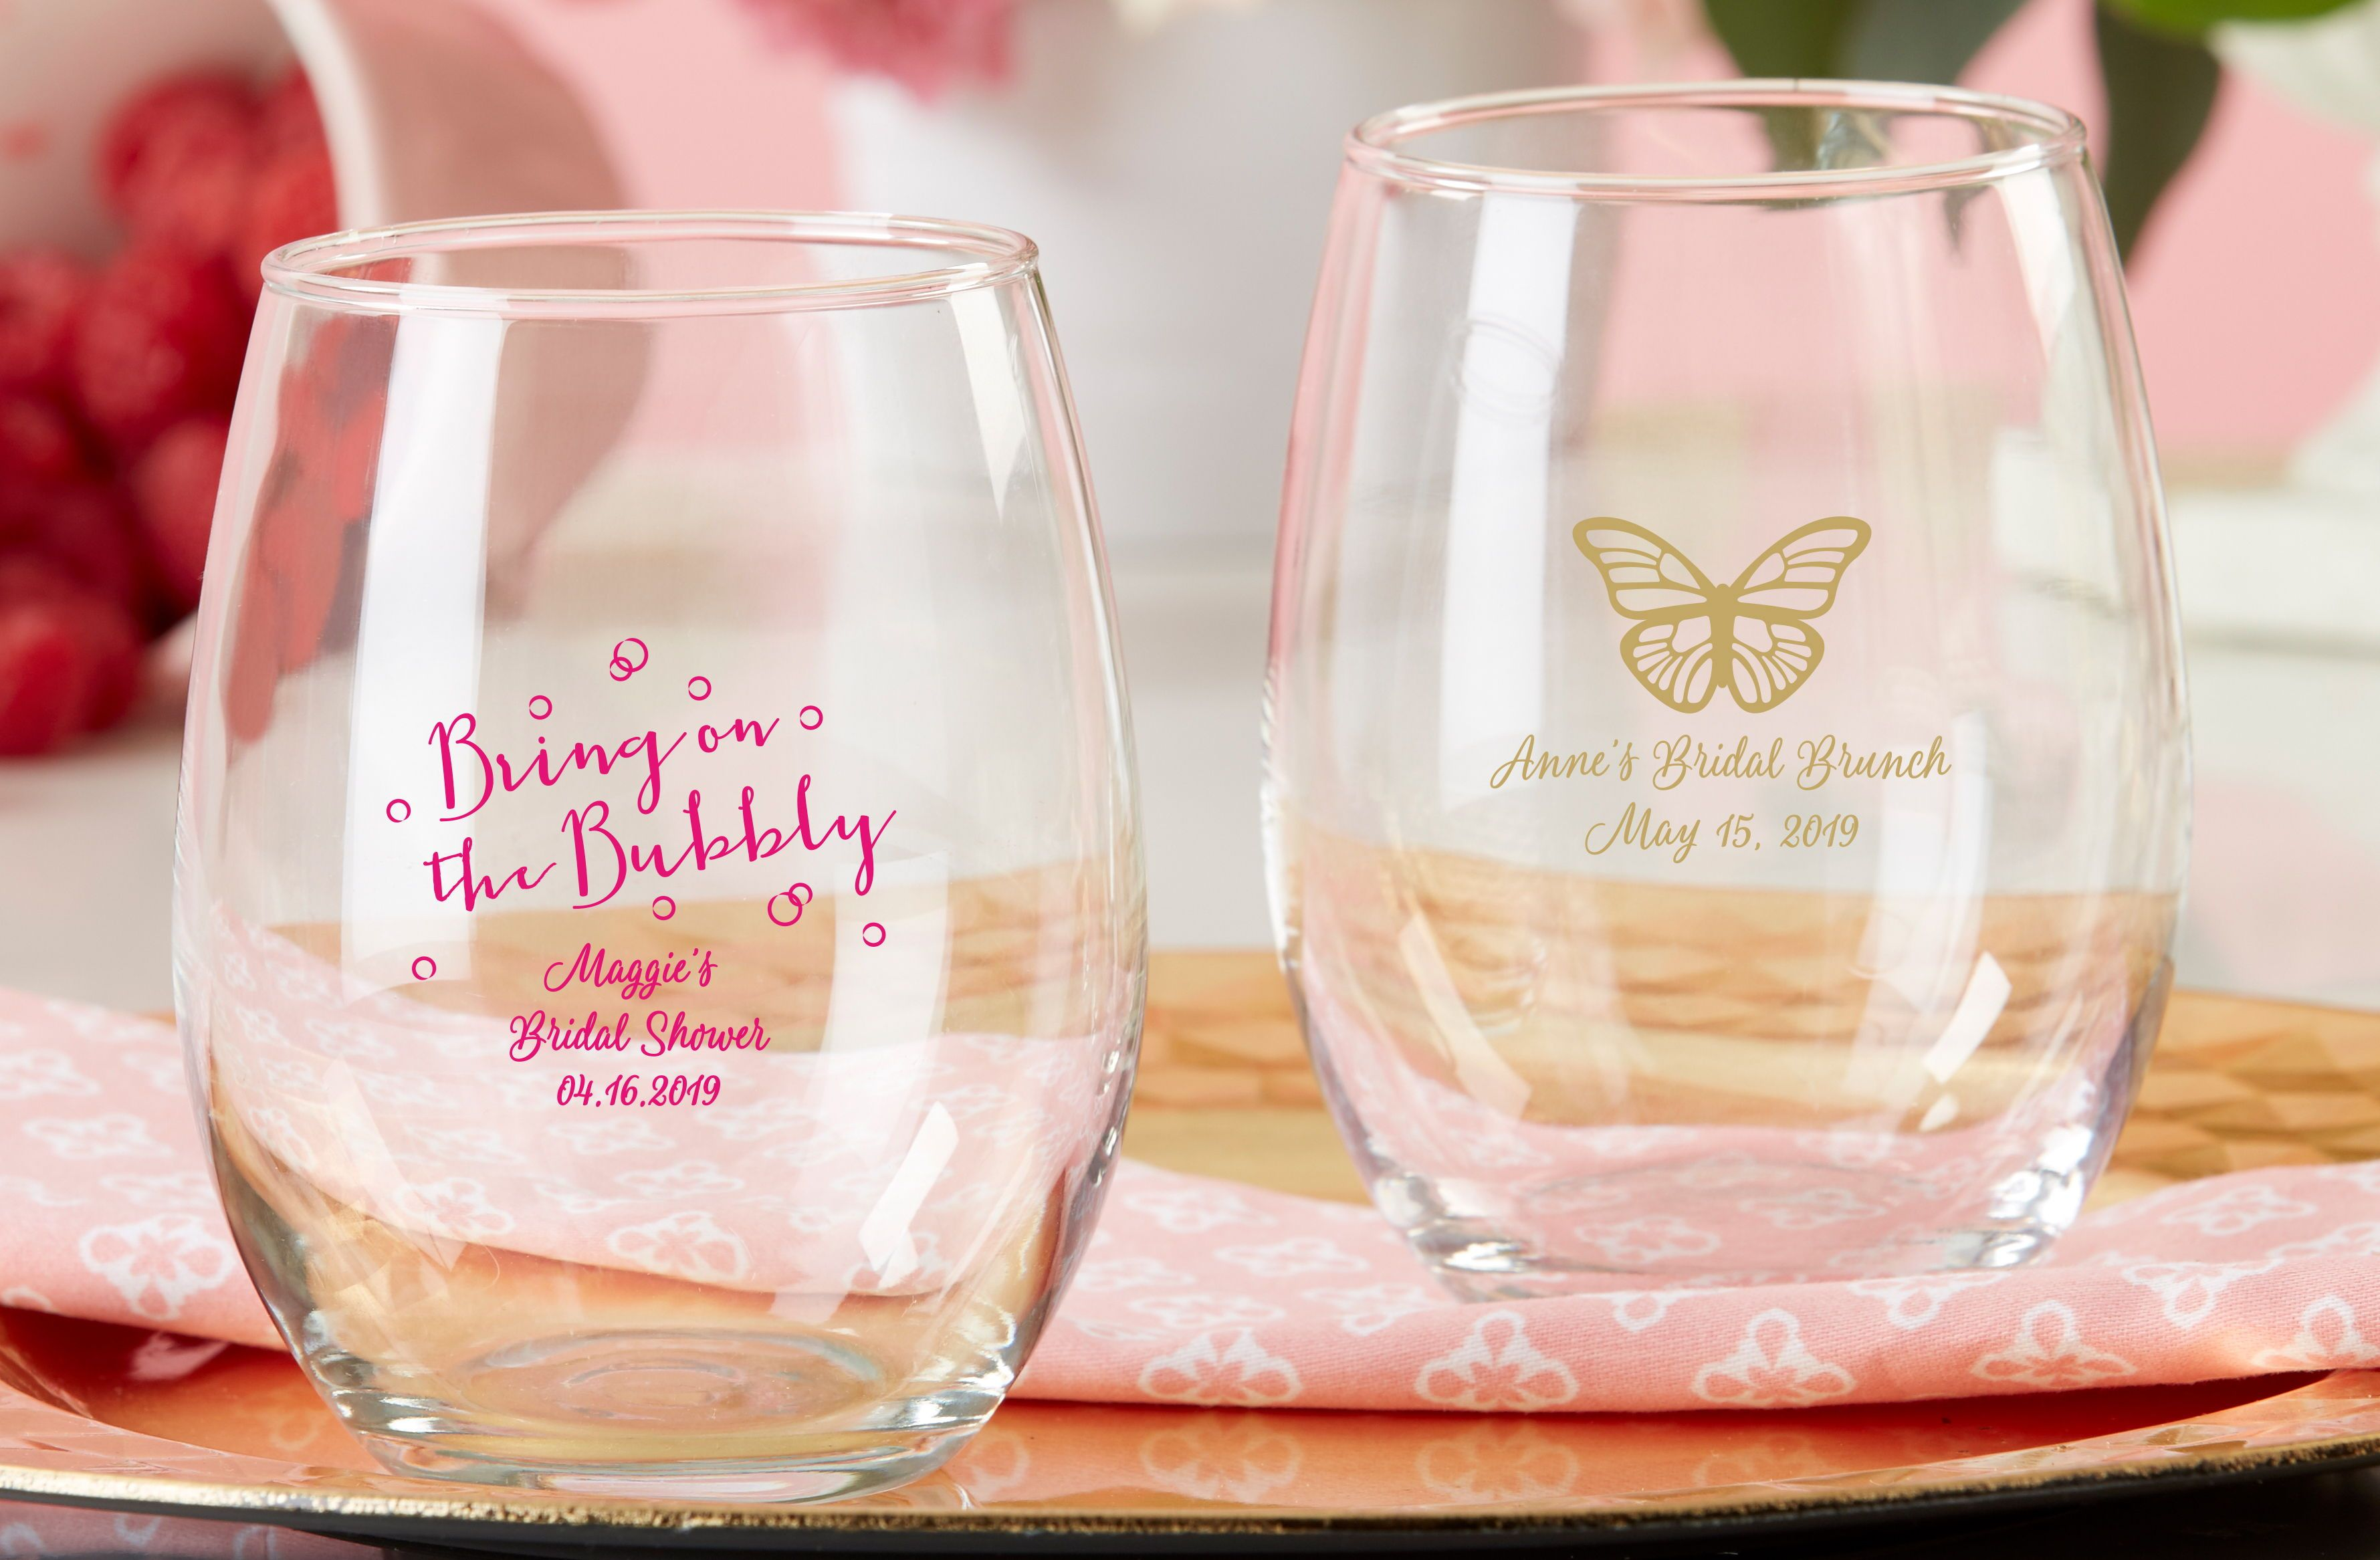 f916cc75e4b Personalized 9 oz. Stemless Wine Glass - Bridal Brunch | gifts ...